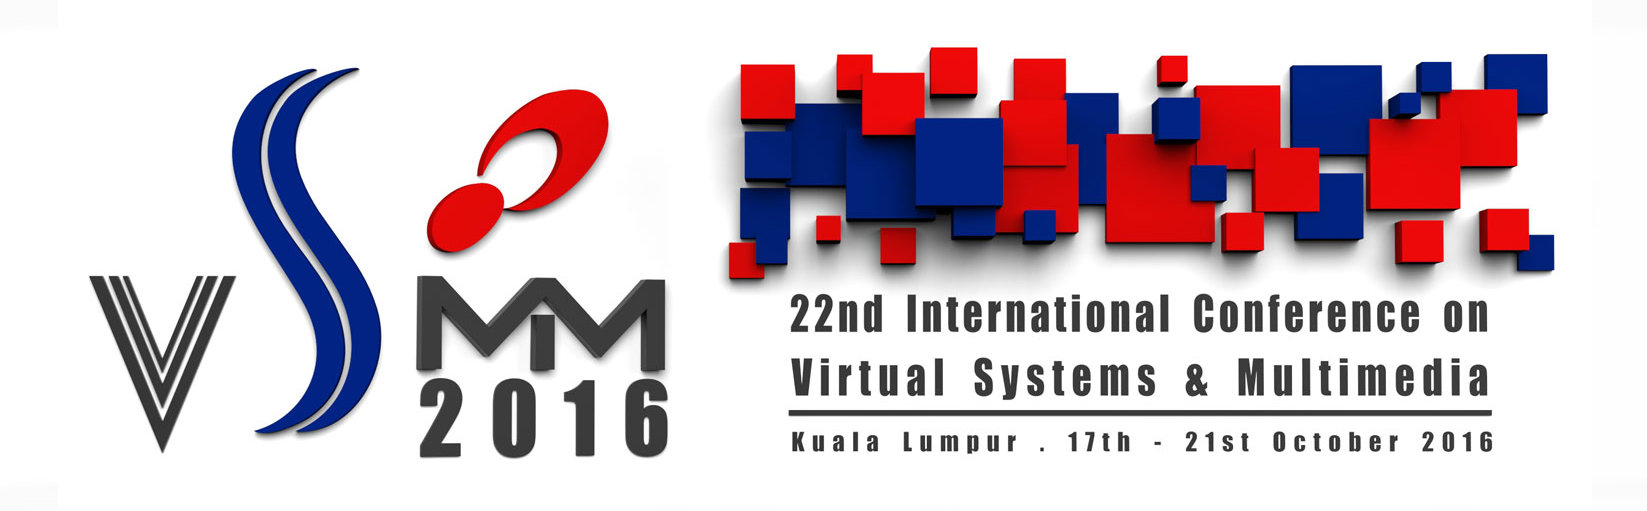 Past Conferences Overview – VSMM SOCIETY